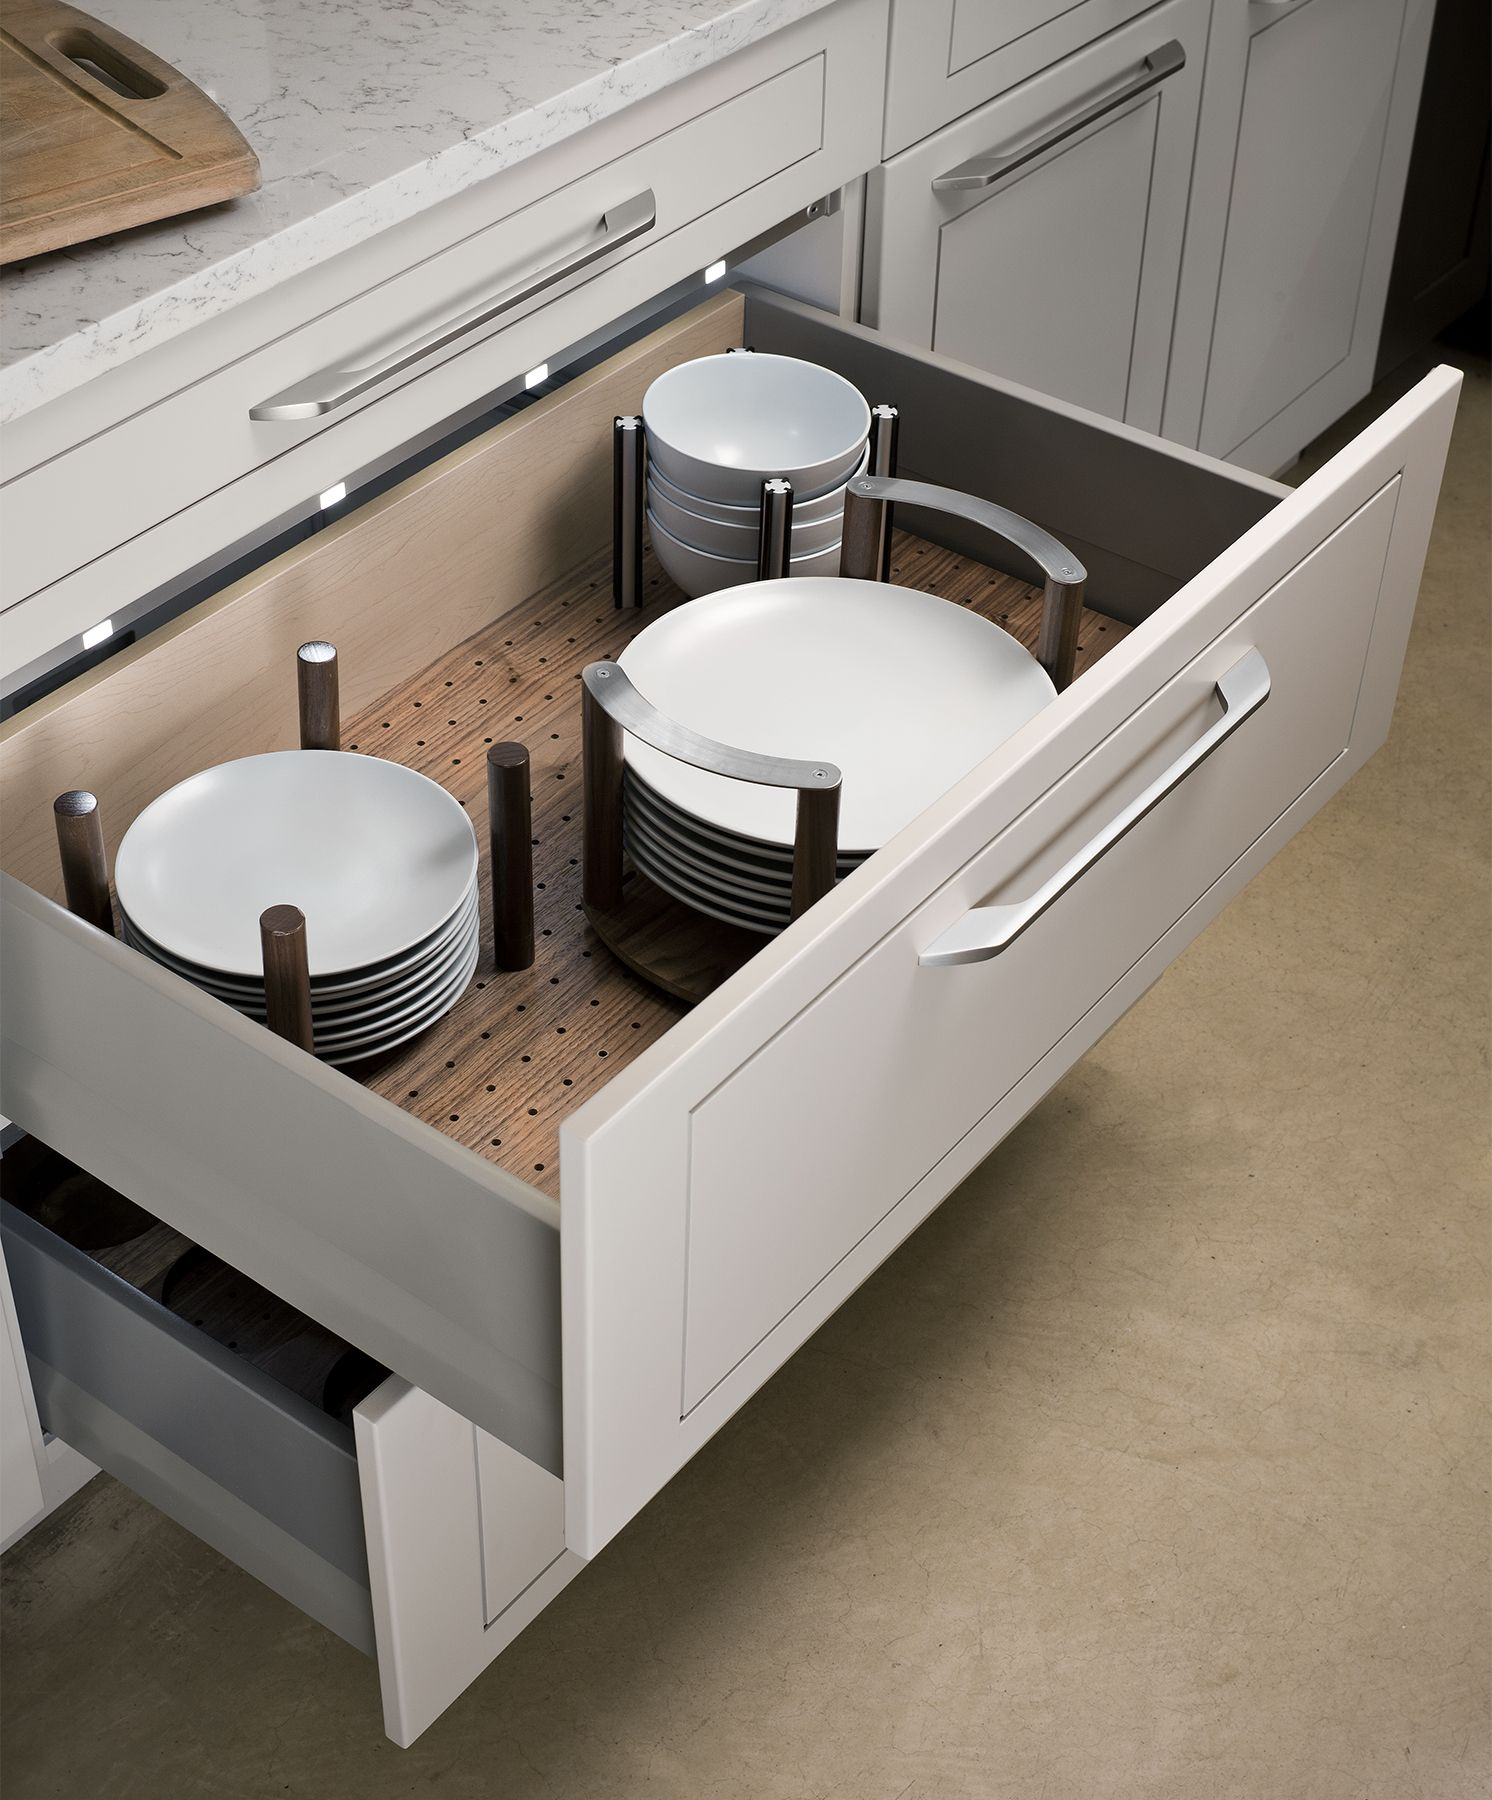 No Upper Kitchen Cabinets Dish Drawer Pegs Important If No Upper Cabinets Possibly